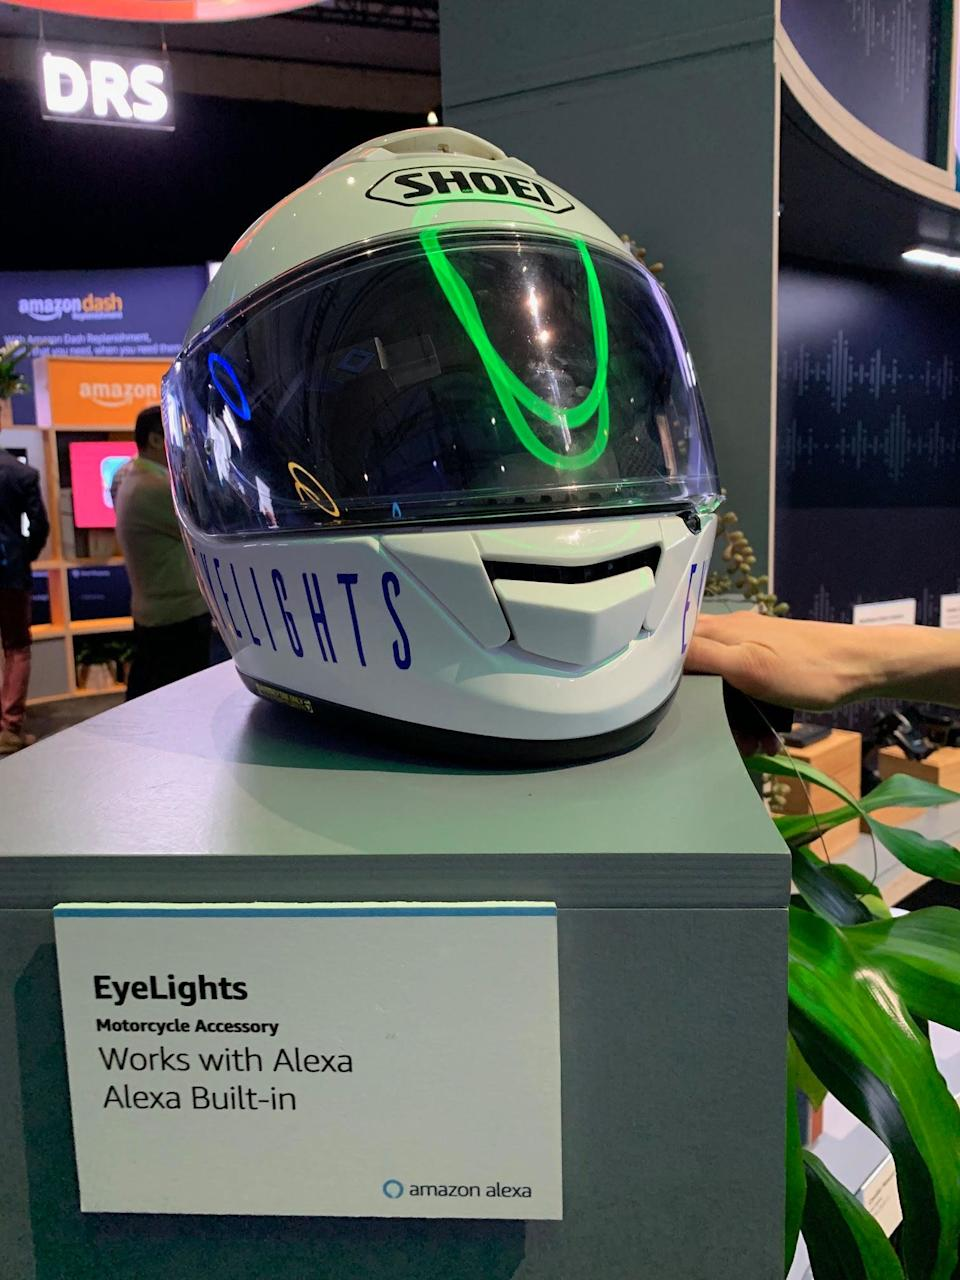 This prototype Alexa-enabled motorcycle helmet from EyeLights, featured at CES 2019 last week, is just one example of how popular Amazon's smart assistant has become with third-party companies. Source: JP Mangalindan/Yahoo Finance